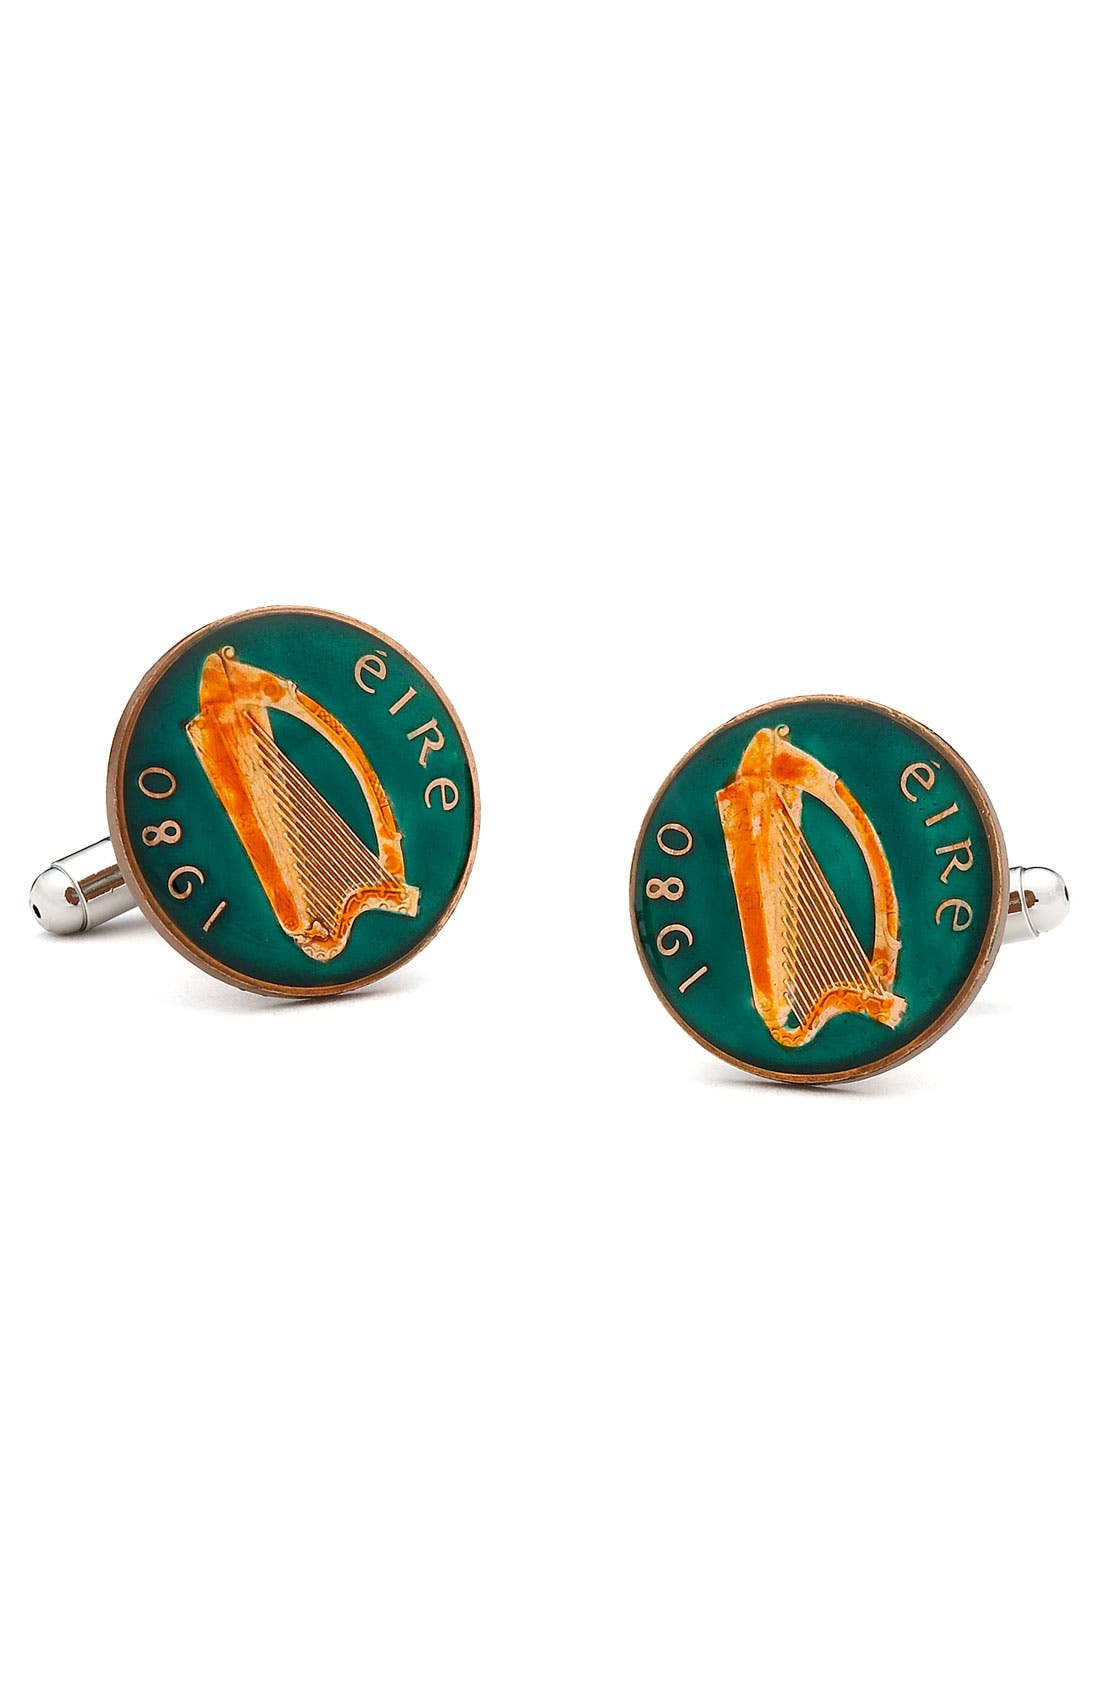 Alternate Image 1 Selected - Penny Black 40 Irish Eire Cuff Links